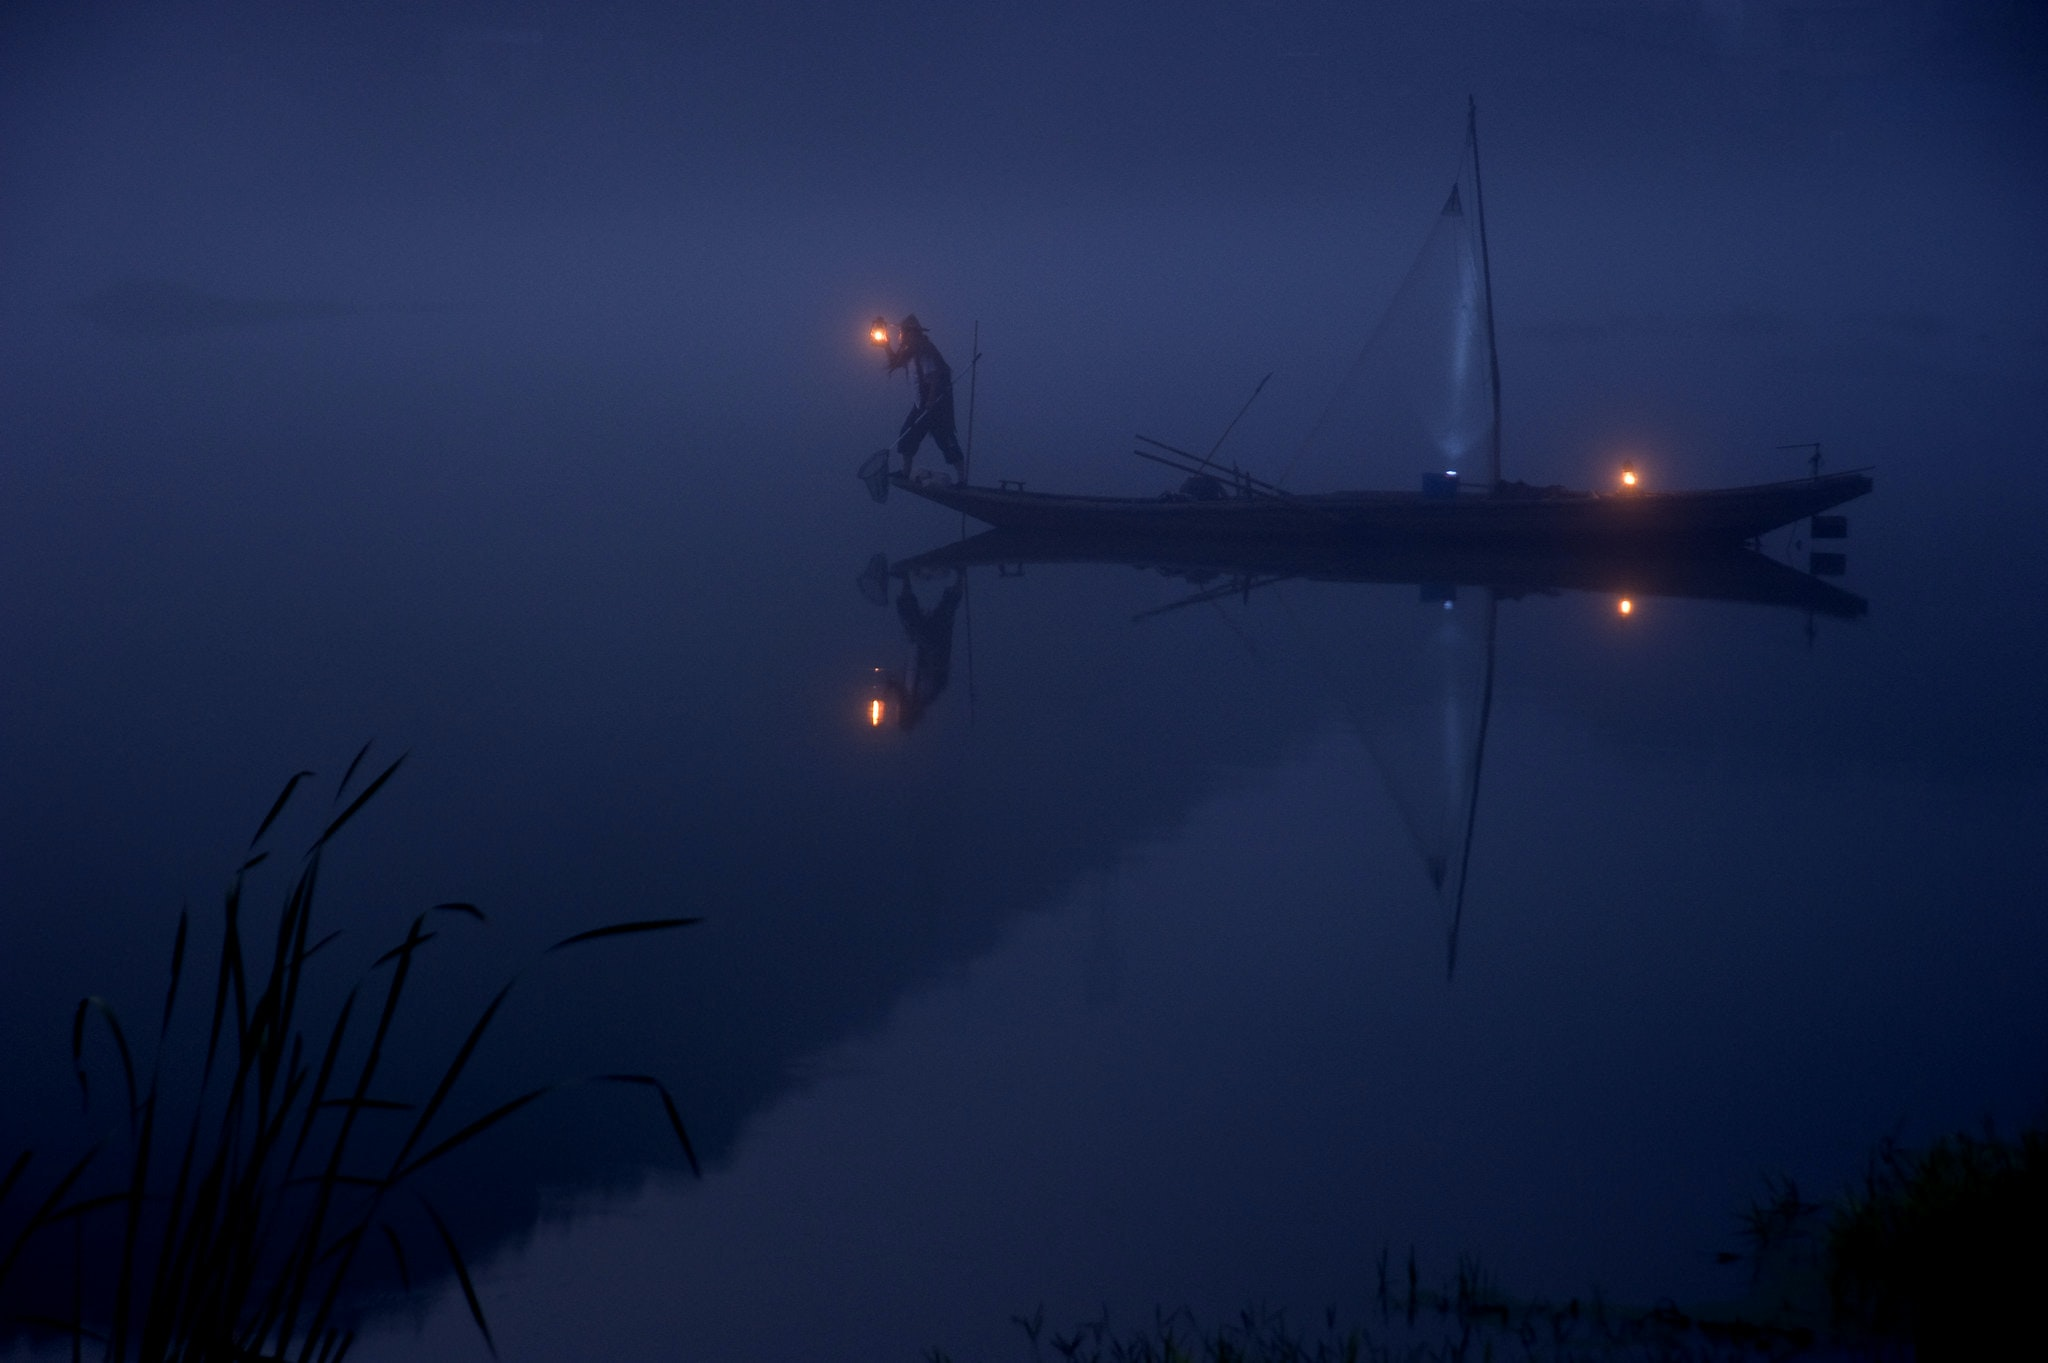 A man is trying to fish in the dark from a boat on a tranquil lake.